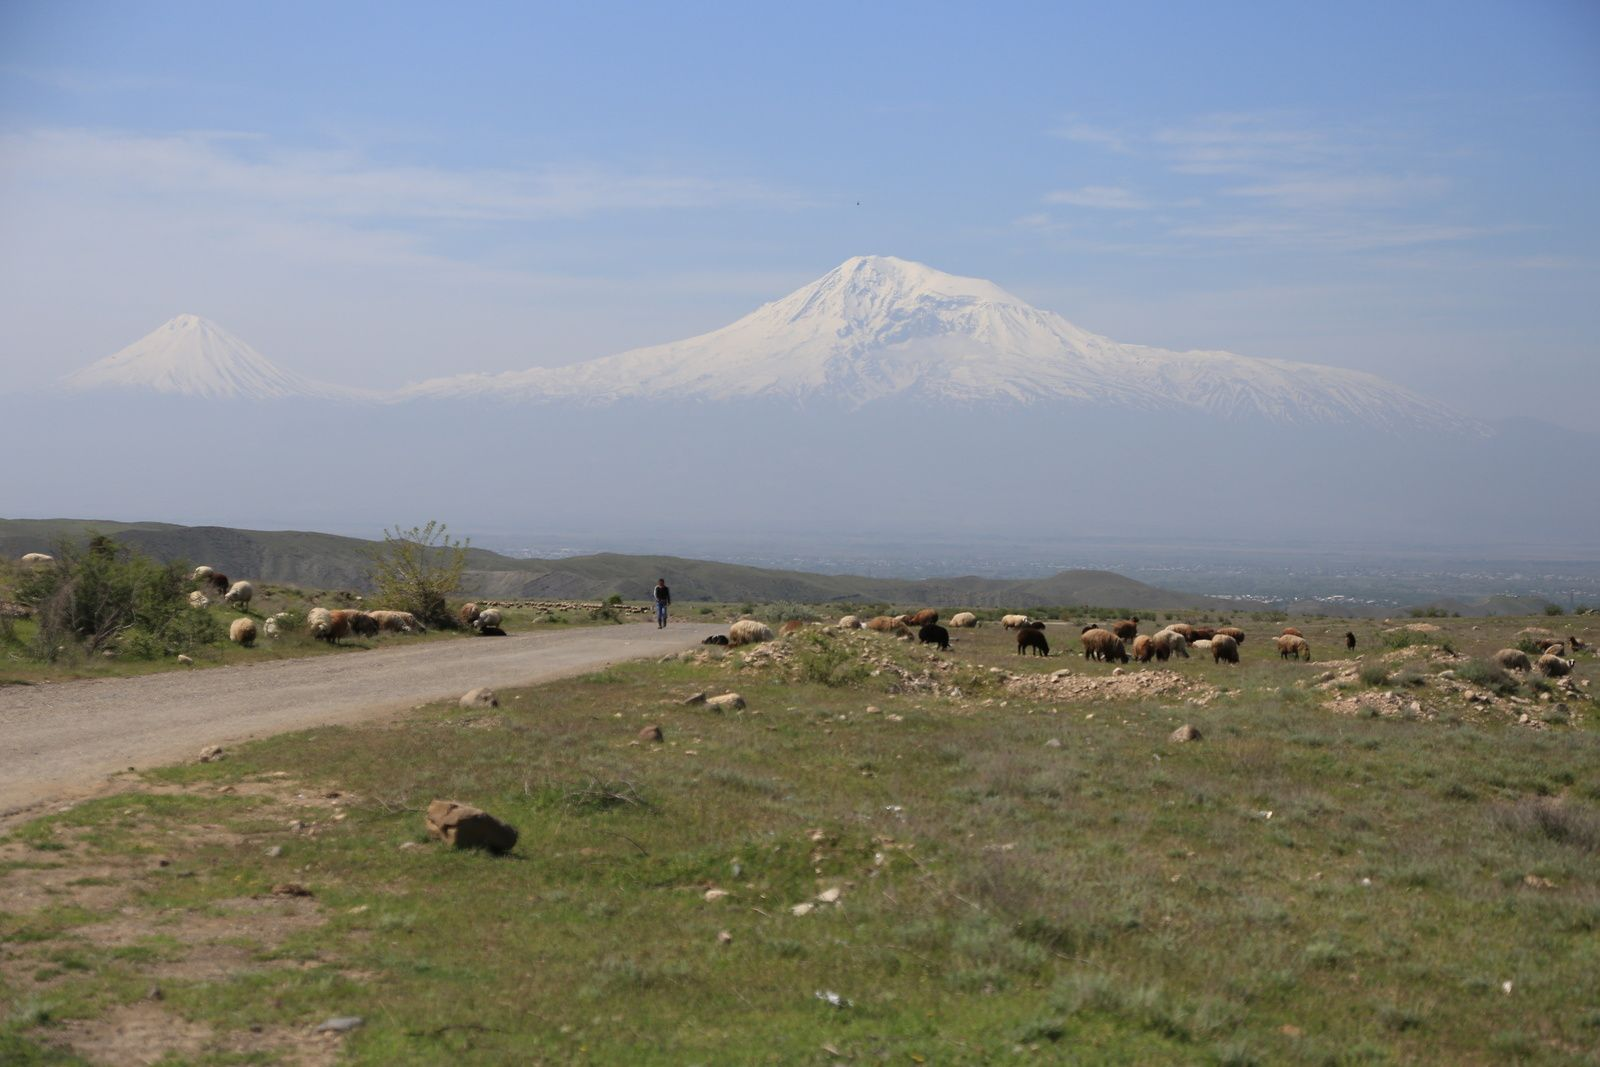 The Great Ararat and the Lesser Ararat in a pastoral landscape - photo © Bernard Duyck 2019